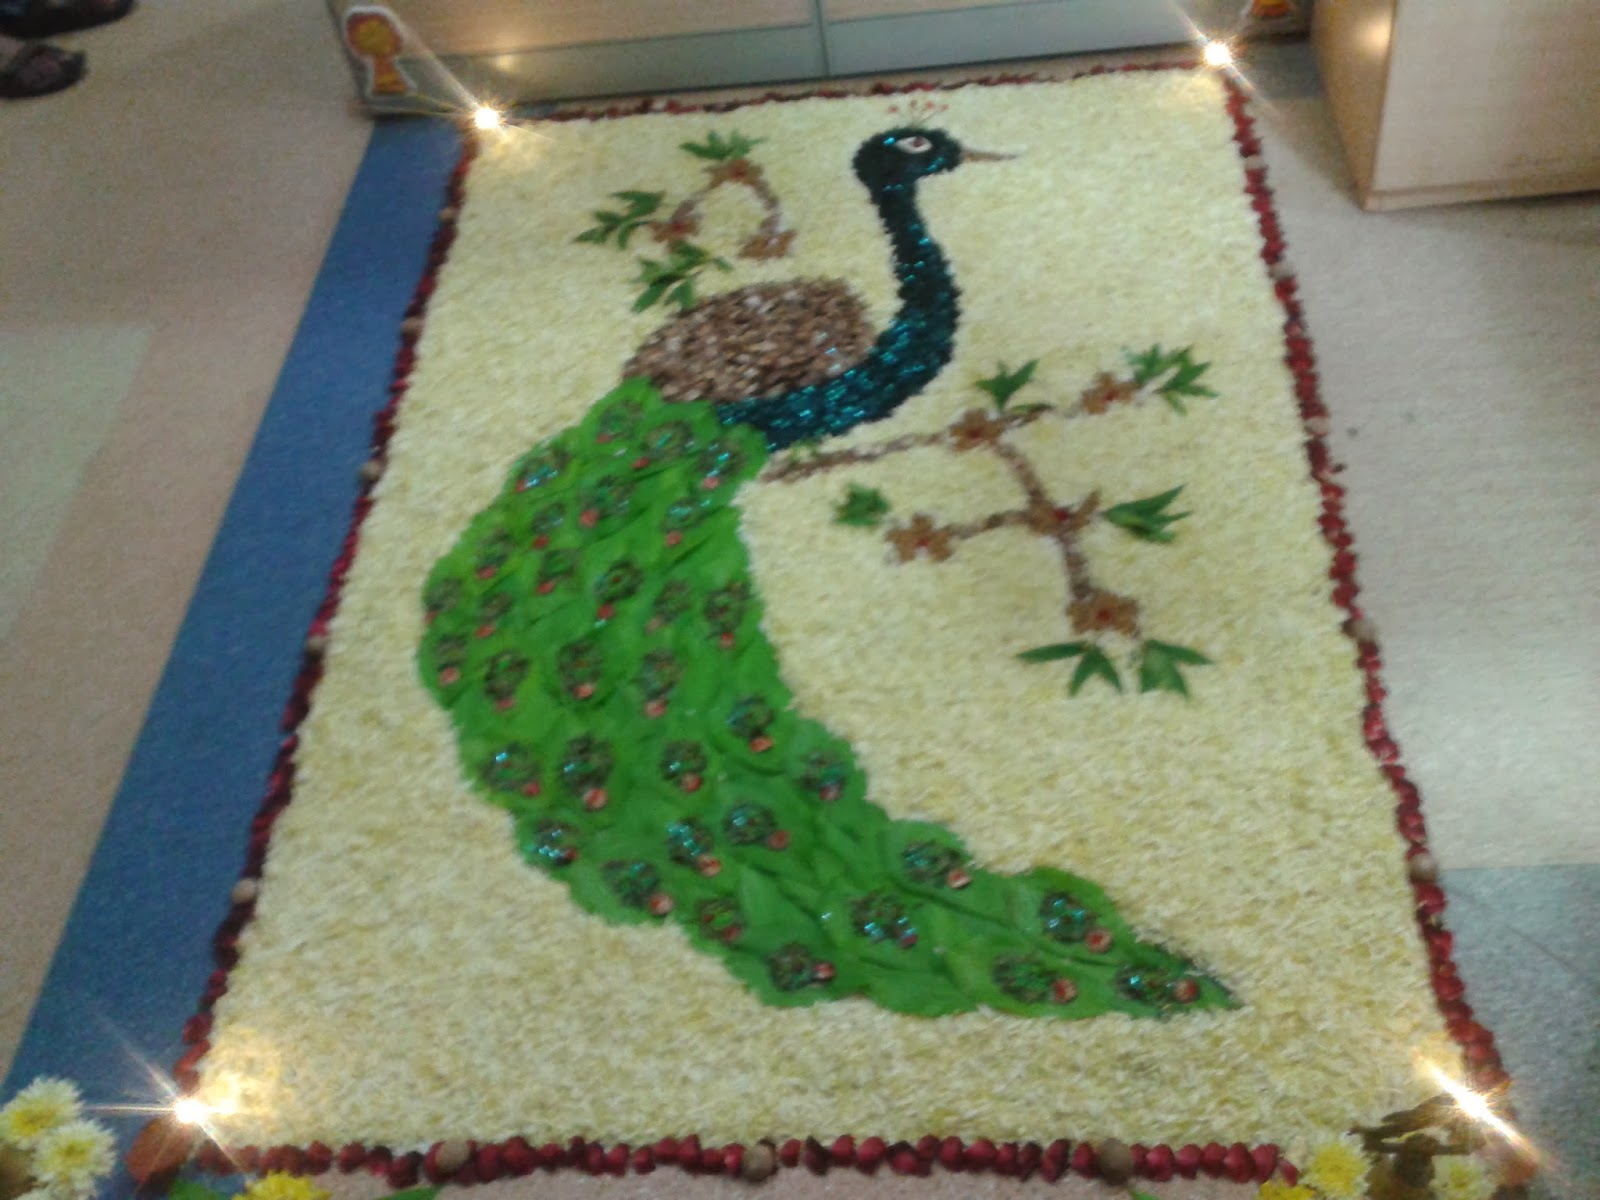 Rangoli Designs For Competition With Concepts This fab rangoli won the 1st